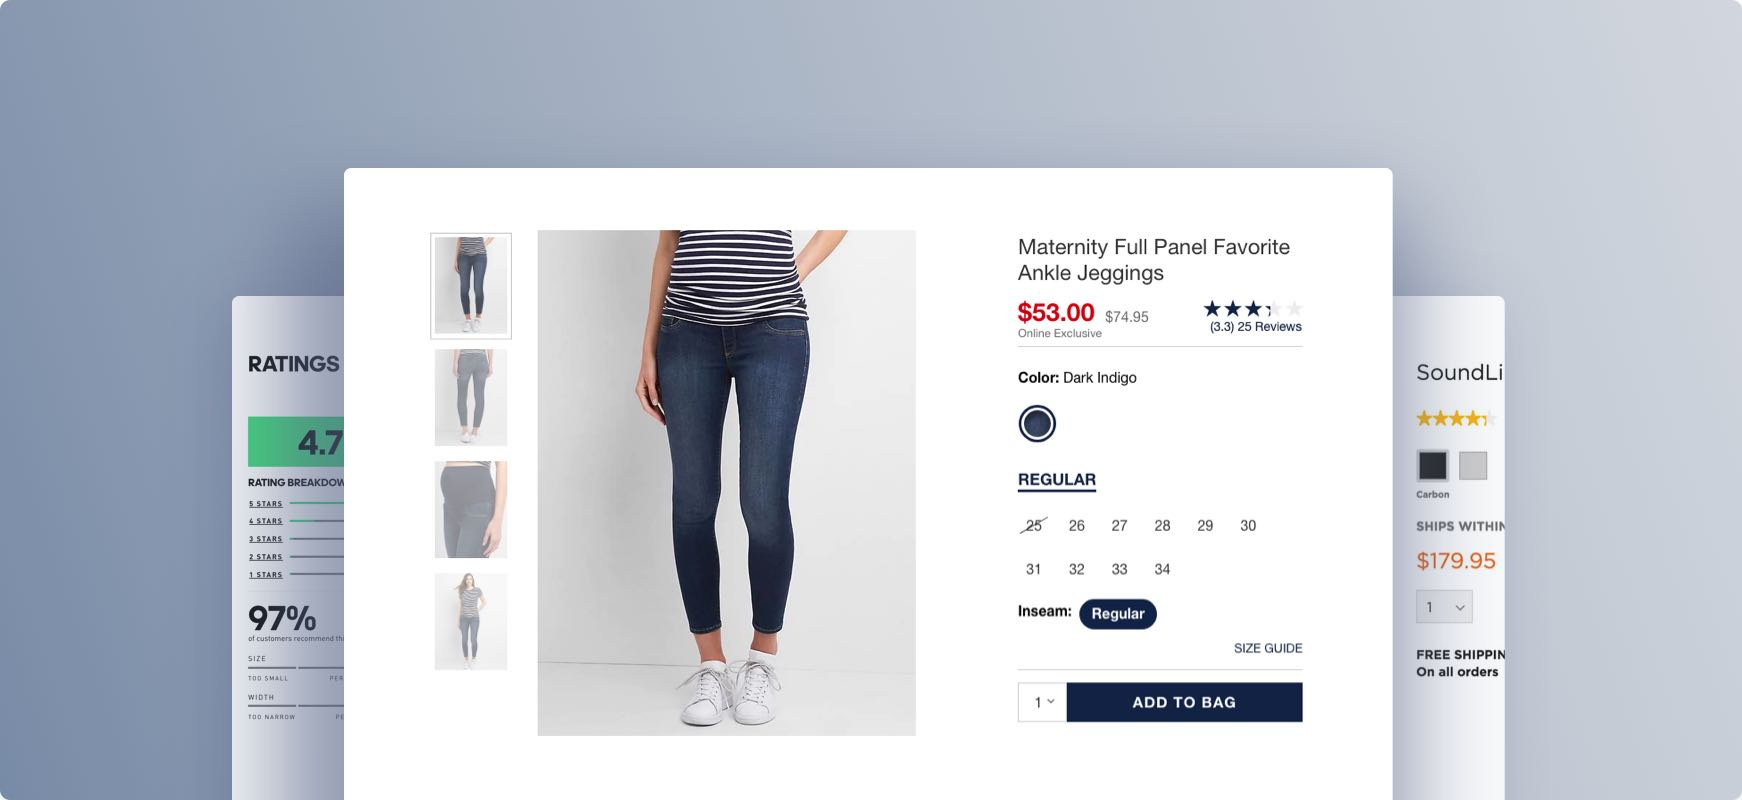 product page UX design